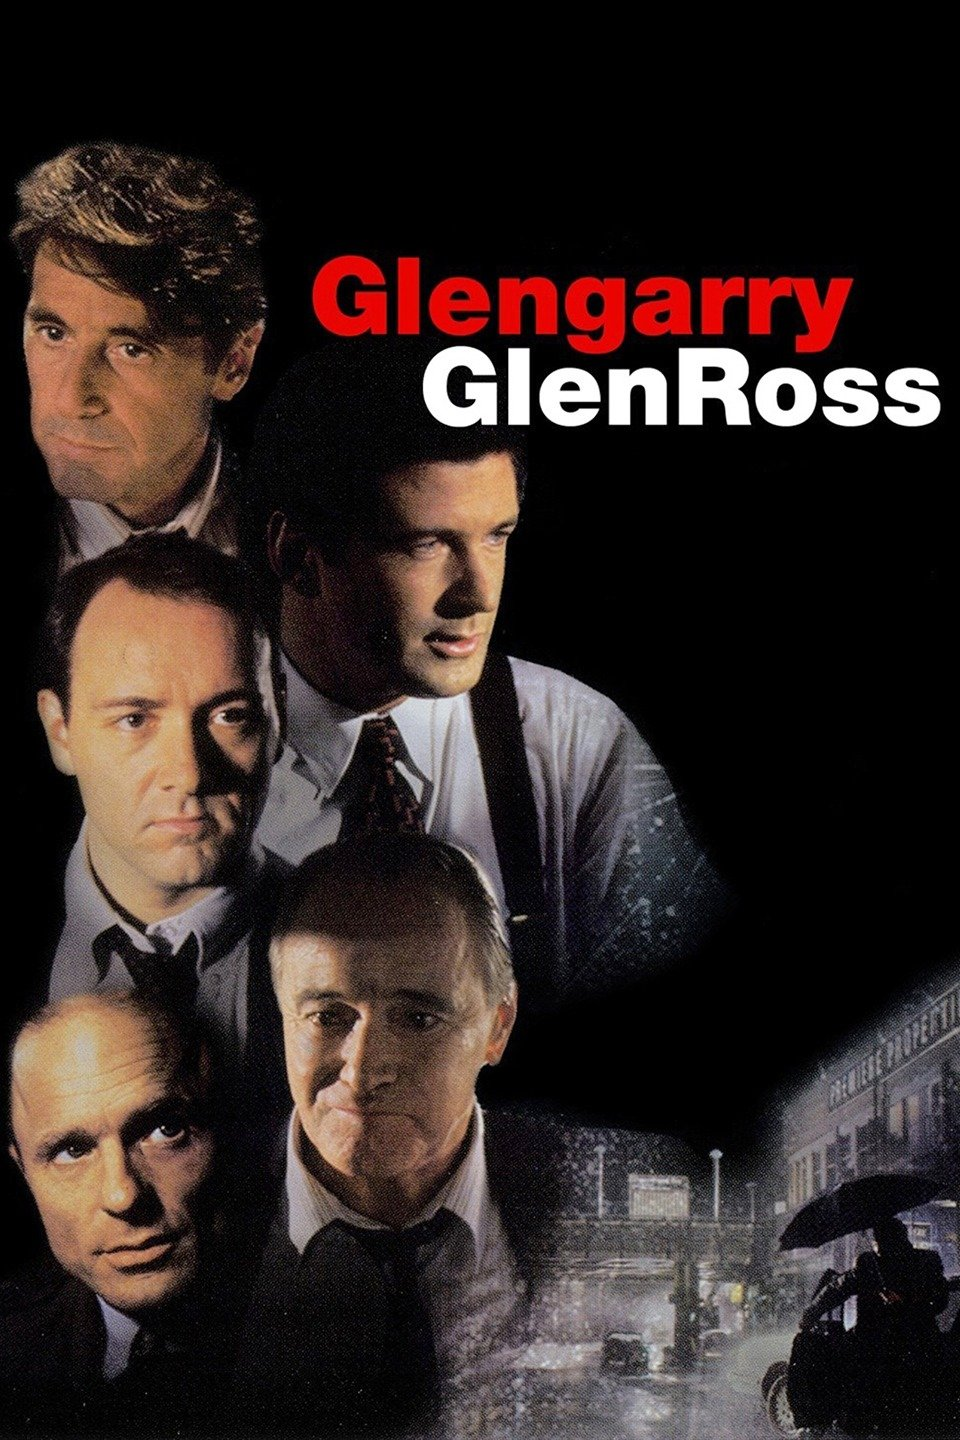 Glengary Glen Ross (1992) - Directed by: James FoleyStarring: Al Pacino, Jack Lemmon, Alec Baldwin, Alan Arkin, Ed Harris, Kevin Spacey, Jonathan Price, Bruce AltmanRated: R for LanguageRunning Time: 1 h 40 mTMM Score: 4.5 stars out of 5STRENGTHS: Writing, ActingWEAKNESSES: -